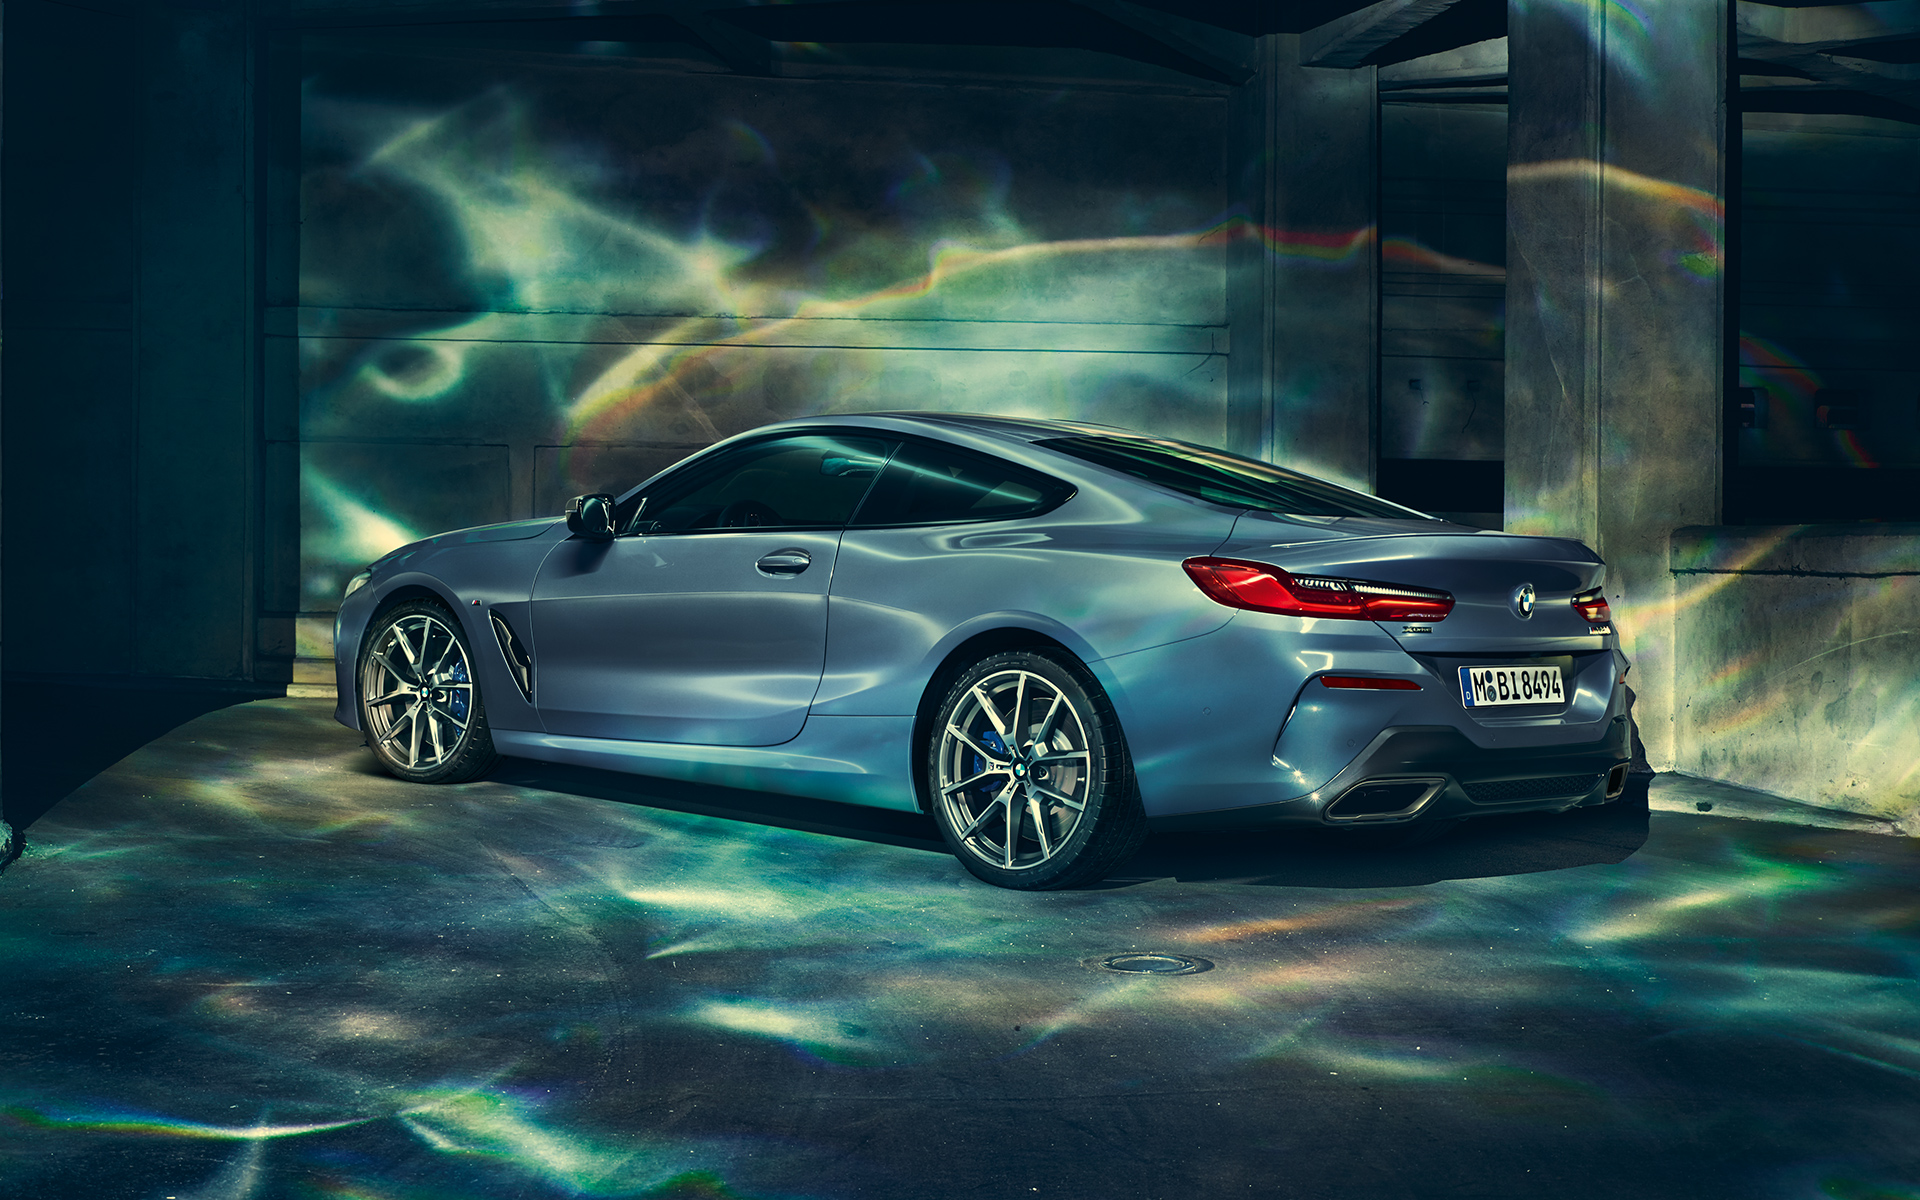 THE 8: Image & Videos of the BMW 8 Series Coupé